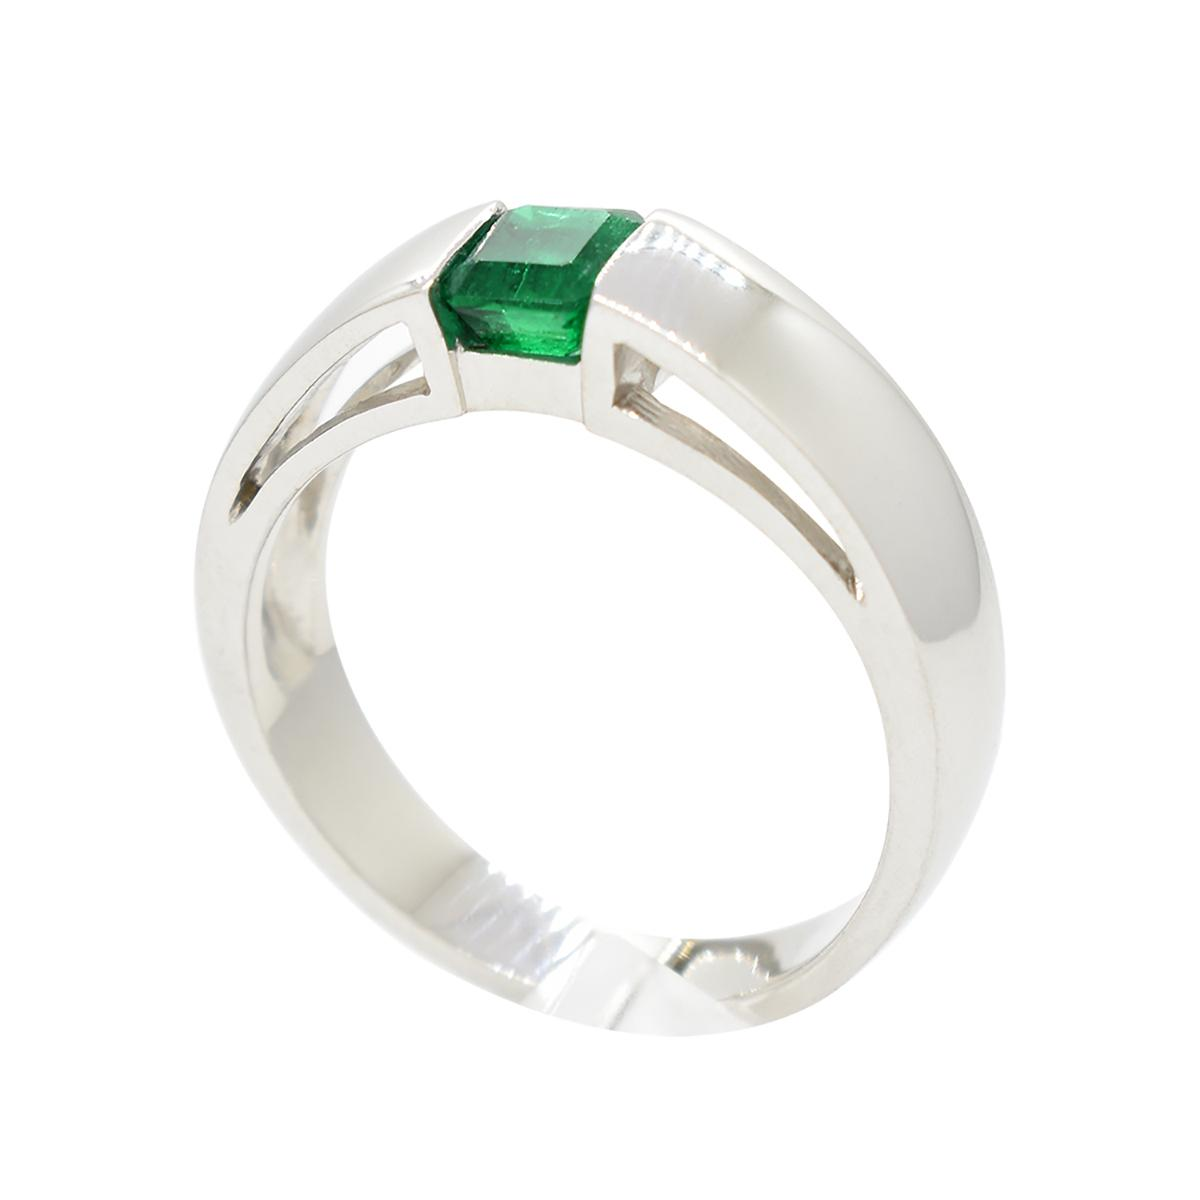 18k-white-gold-ring-with-emerald-cut-emerald